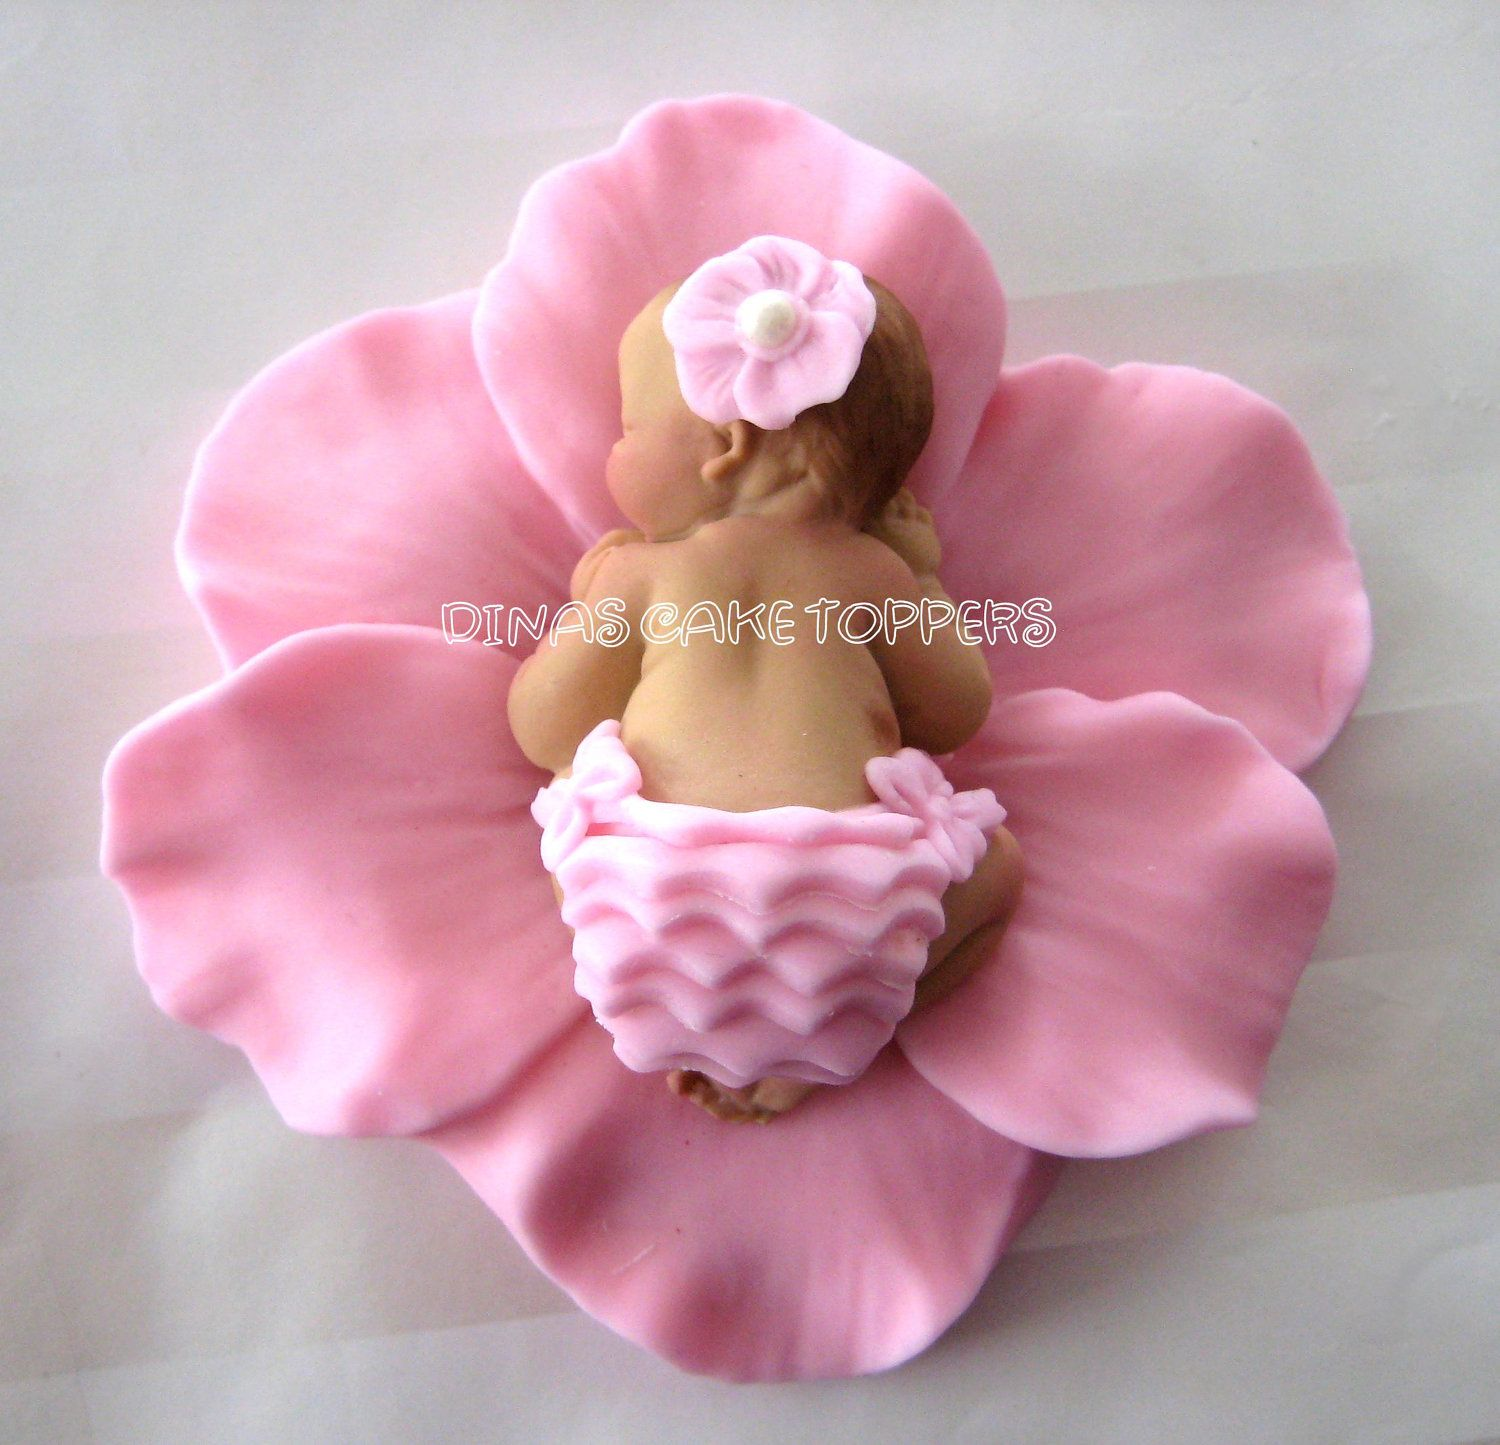 Edible cupcake decorations baby shower - Baby Shower First Birthday Fondant Baby Flower Cake Topper Baptism Christening Favors Decorations 22 00